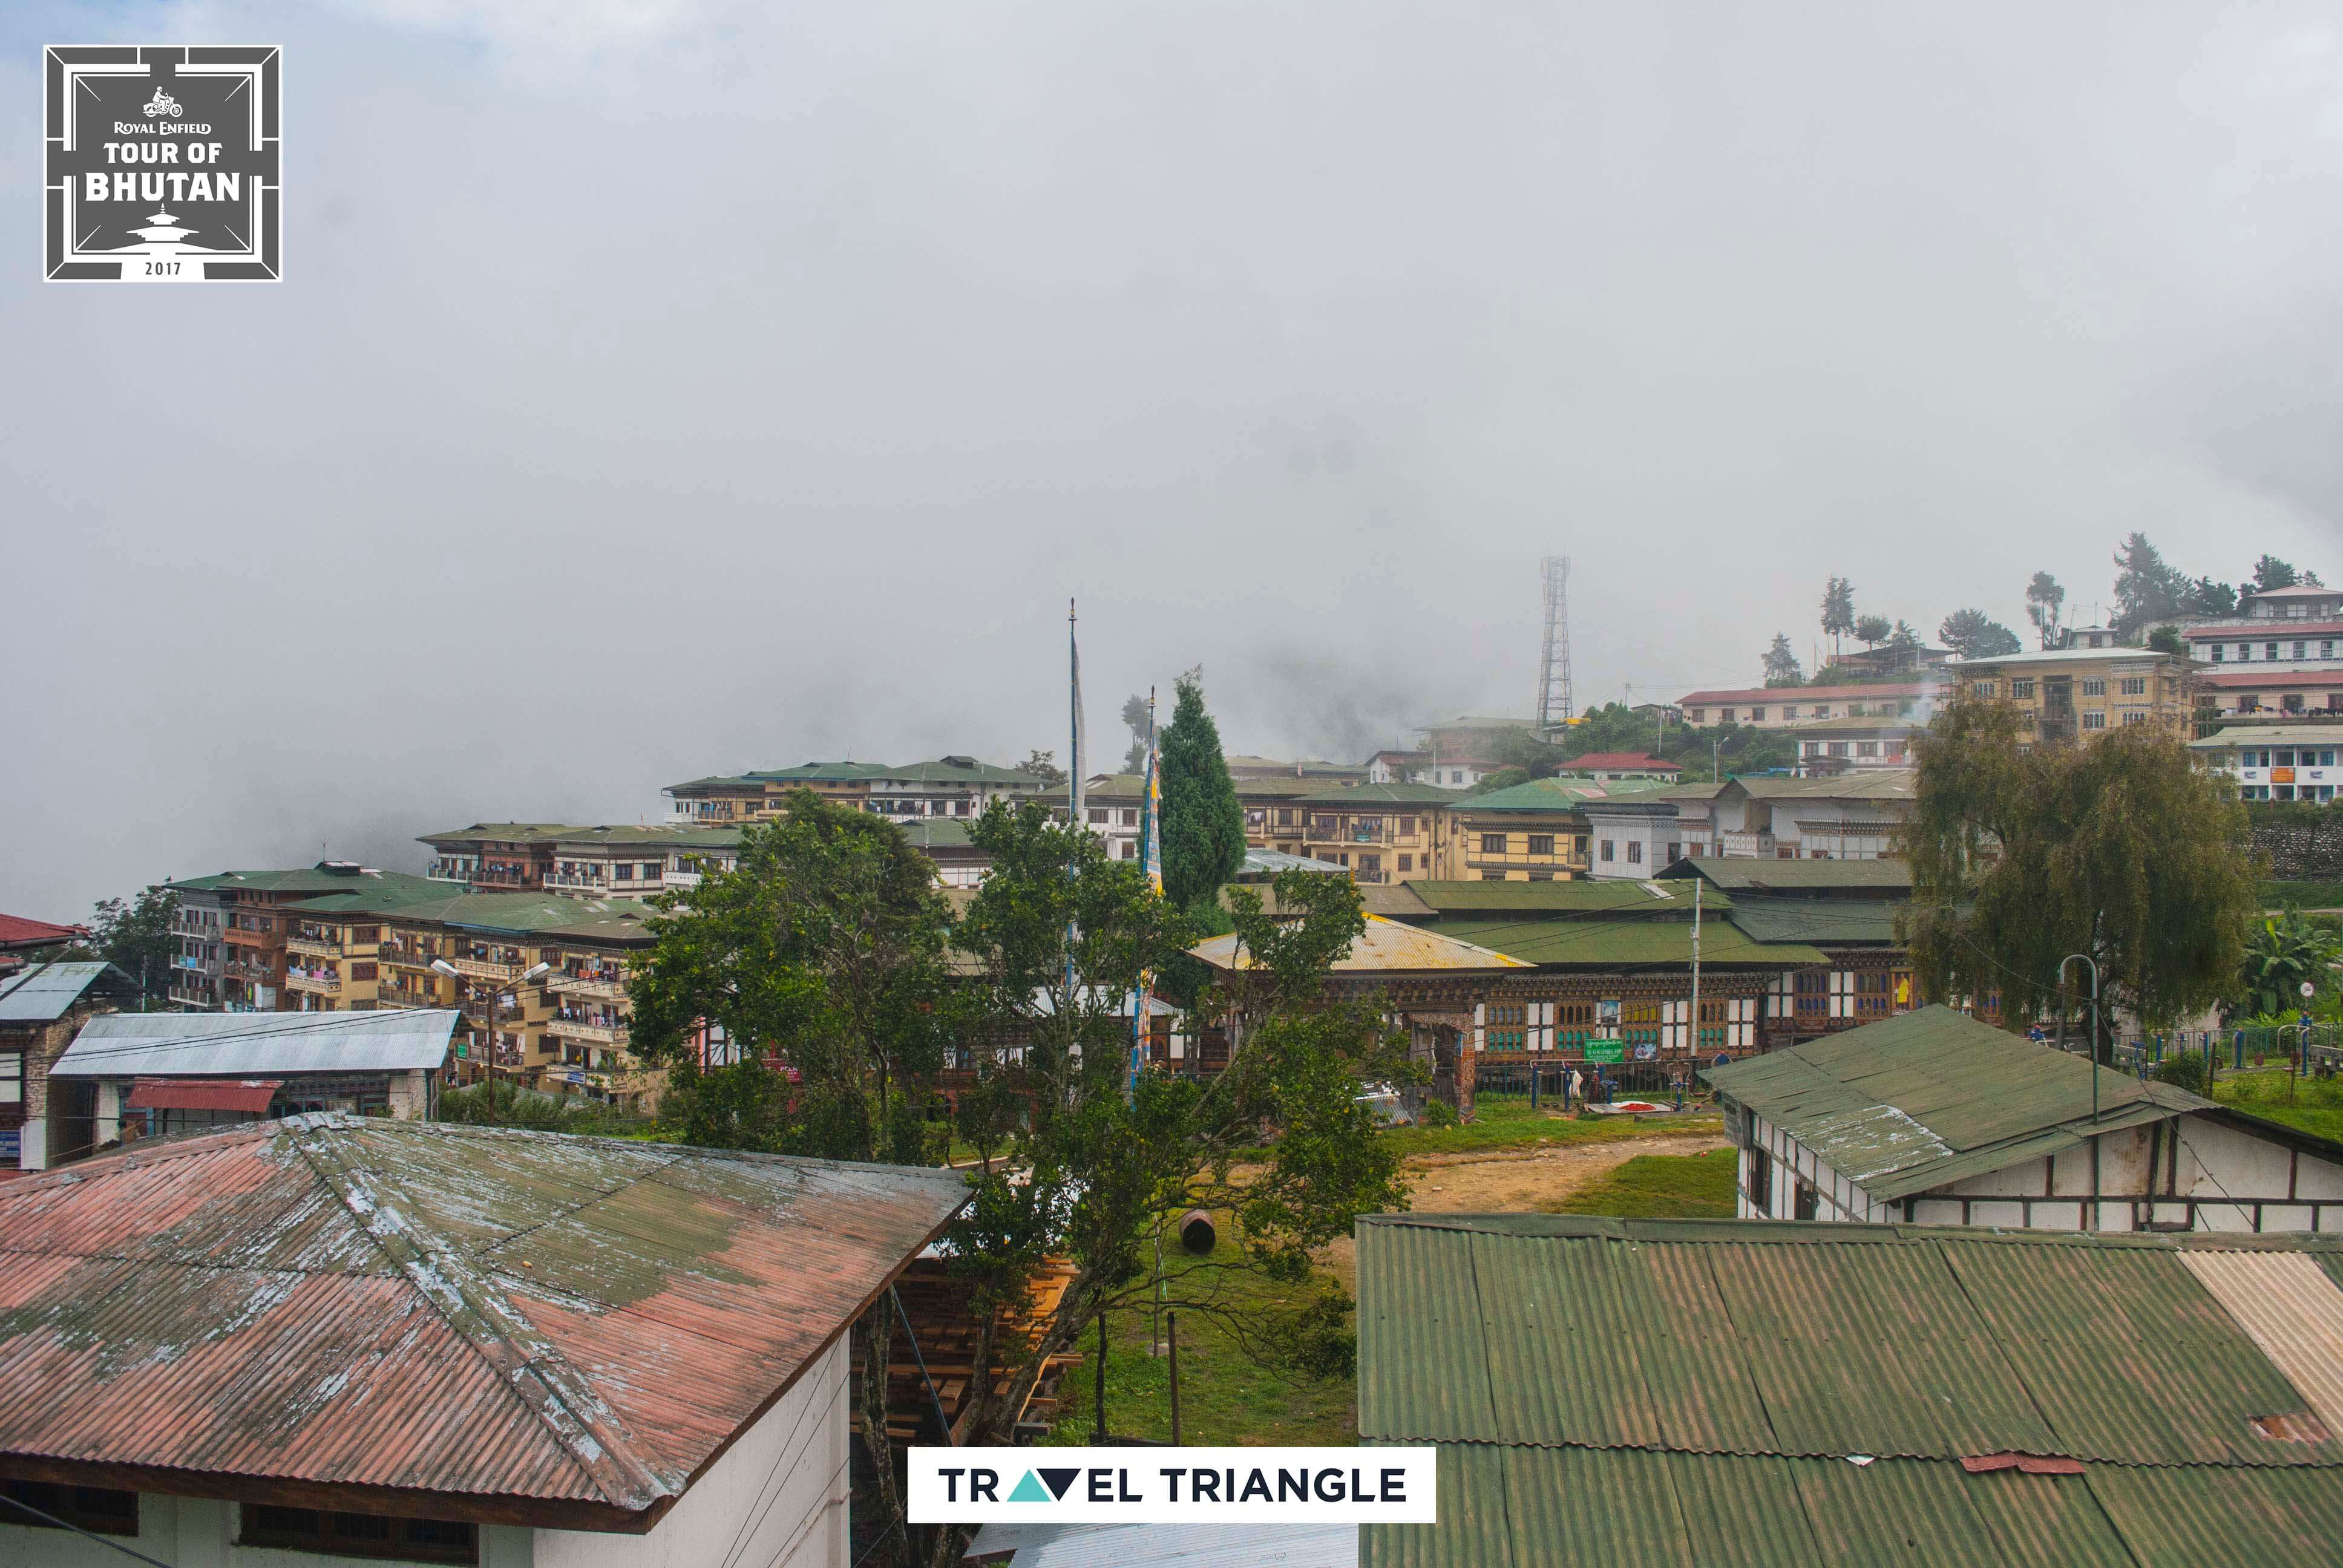 Mongar to Trashigang: the city